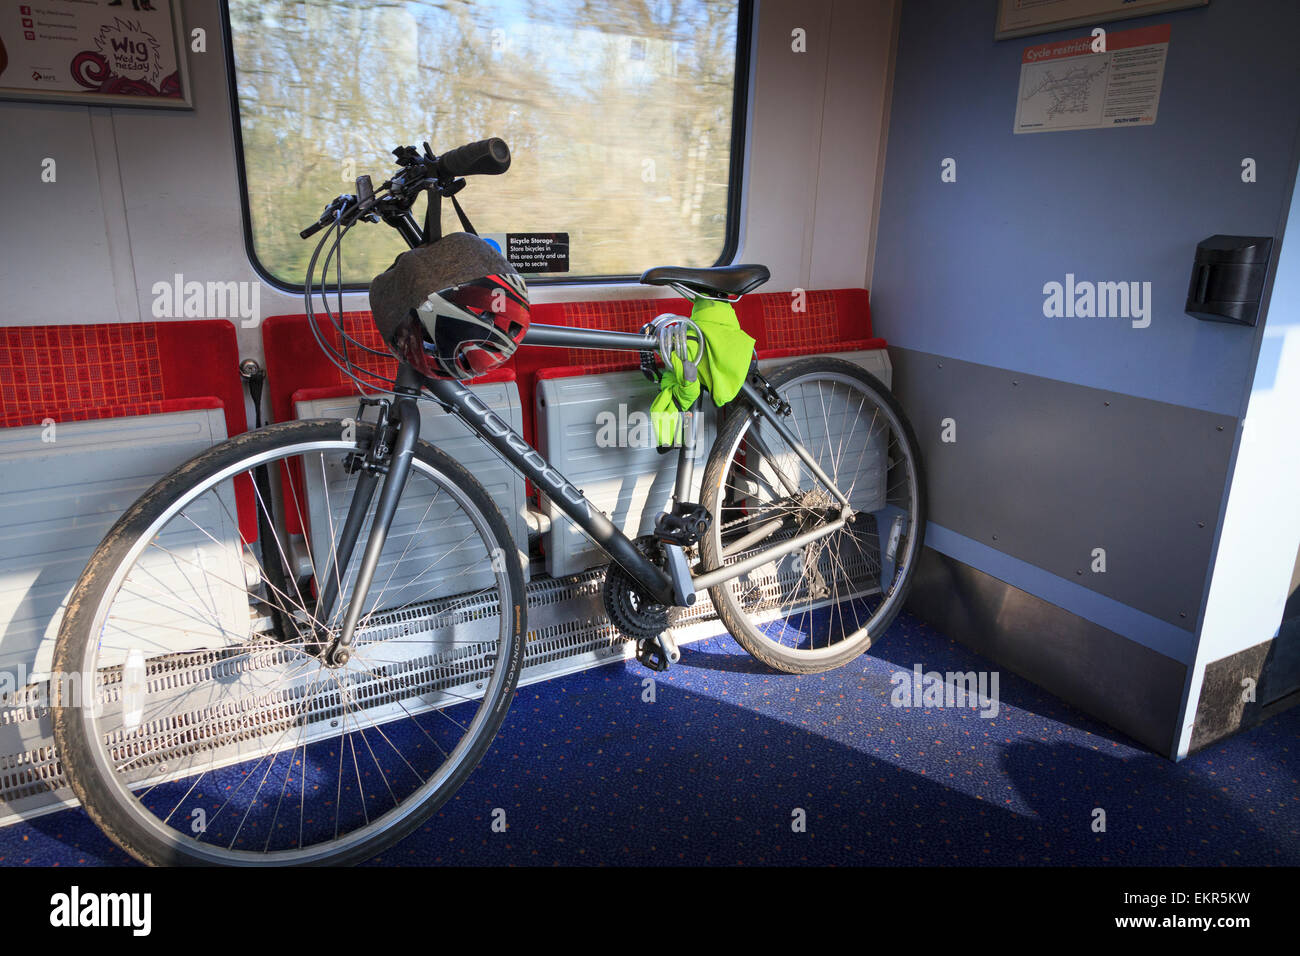 Mountain bicycle in UK train railway carriage without people Stock Photo